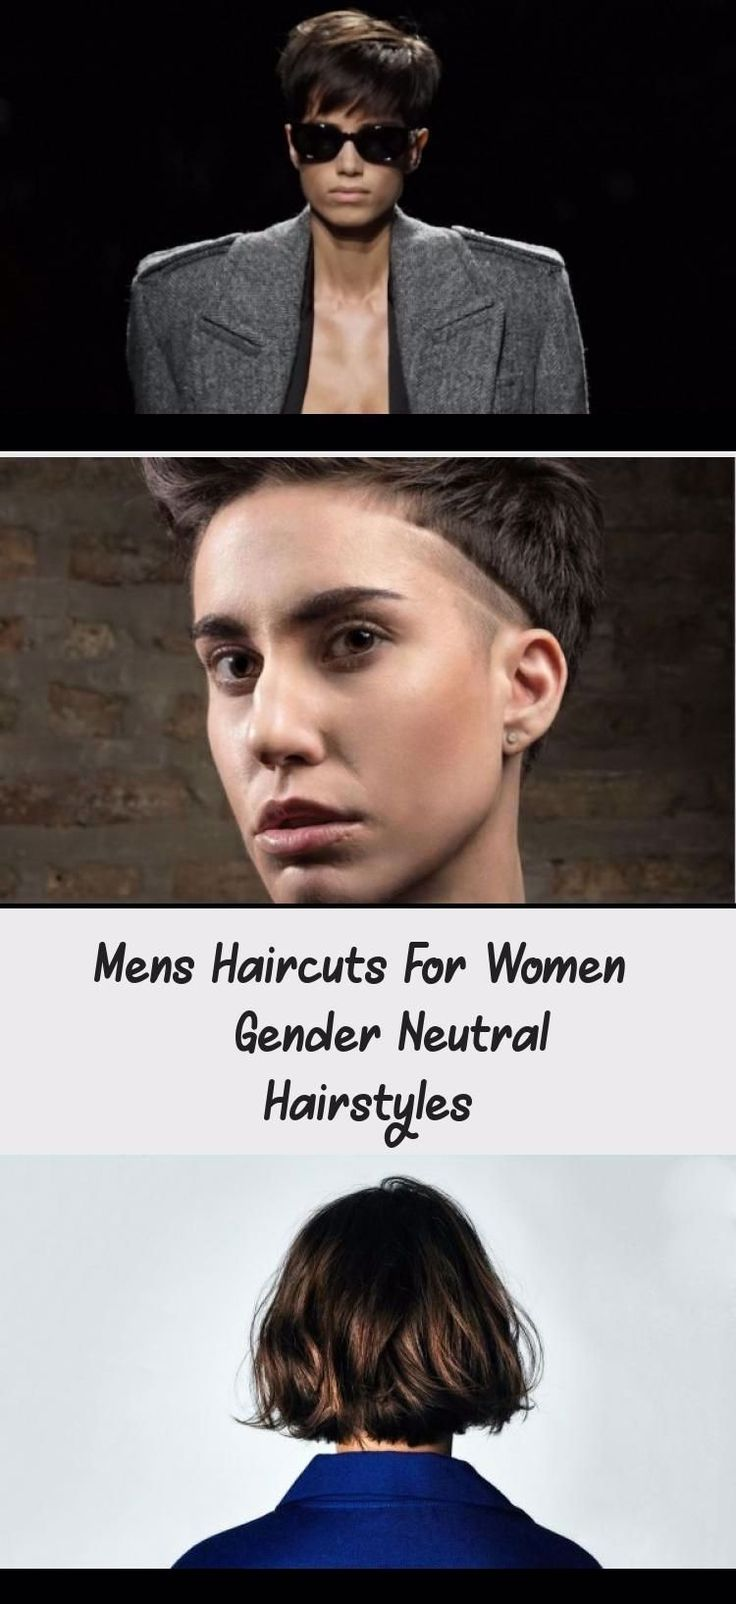 Pin On Gender Neutral Haircut